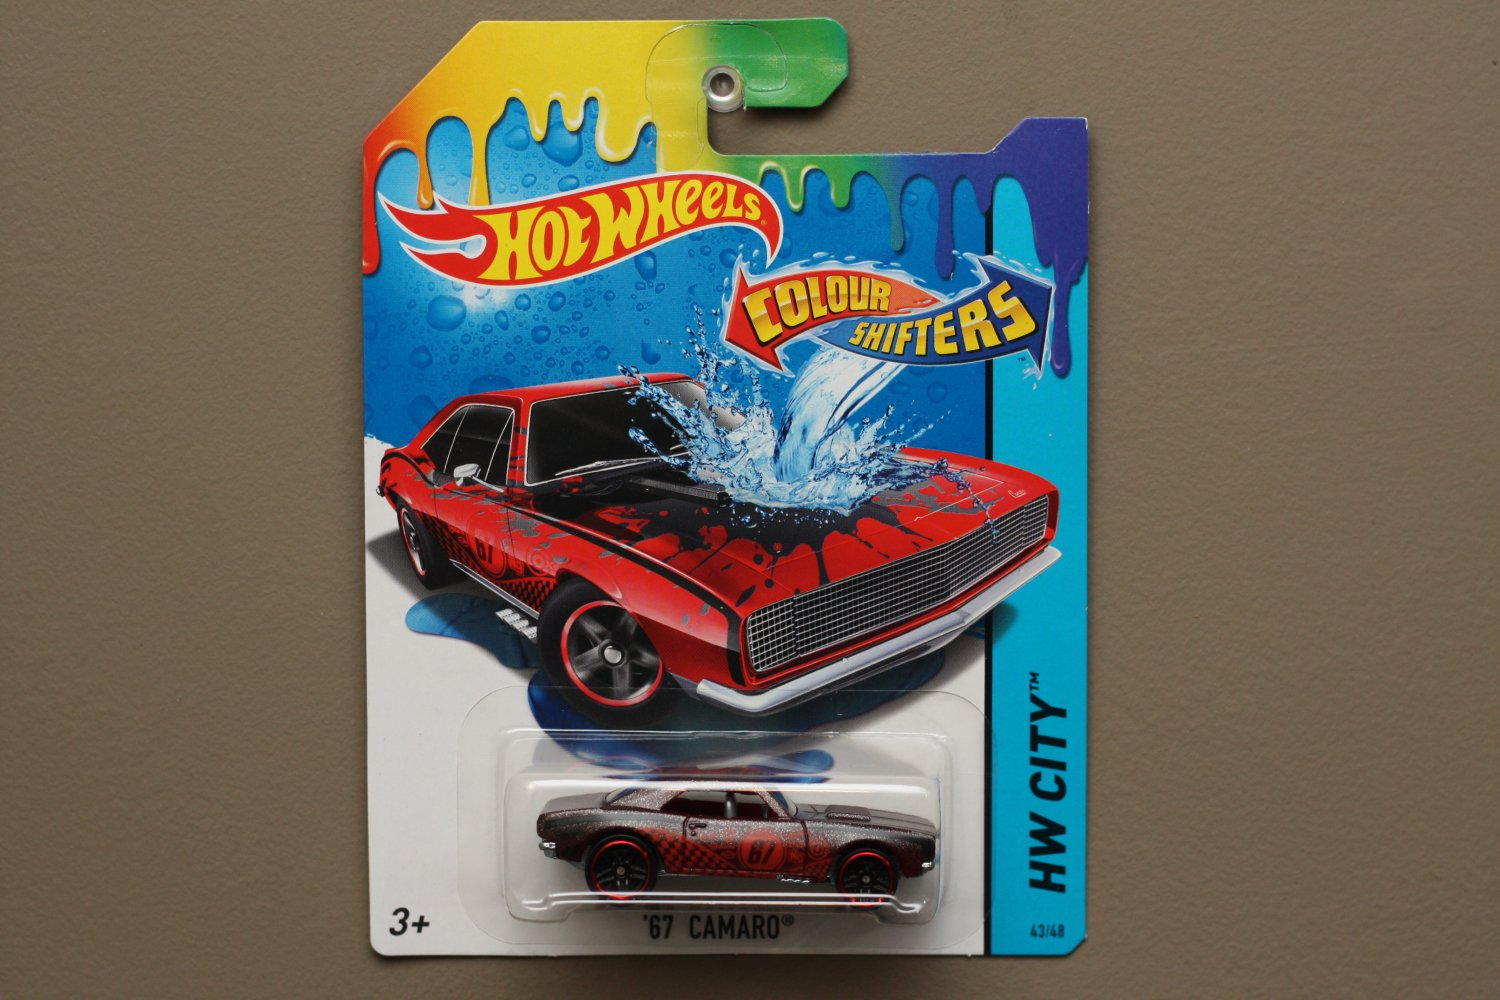 hot wheels 2015 color shifters 39 67 camaro black to red. Black Bedroom Furniture Sets. Home Design Ideas